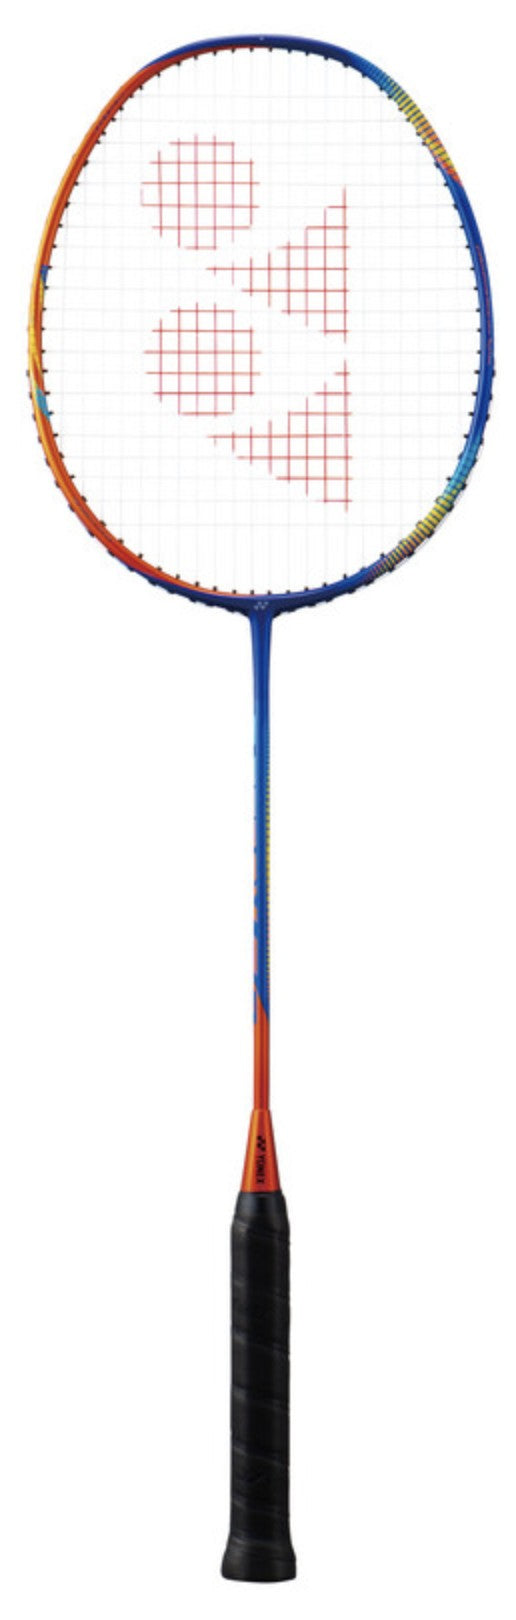 Yonex Astrox Flashboost Badminton Racket - Sports Arena